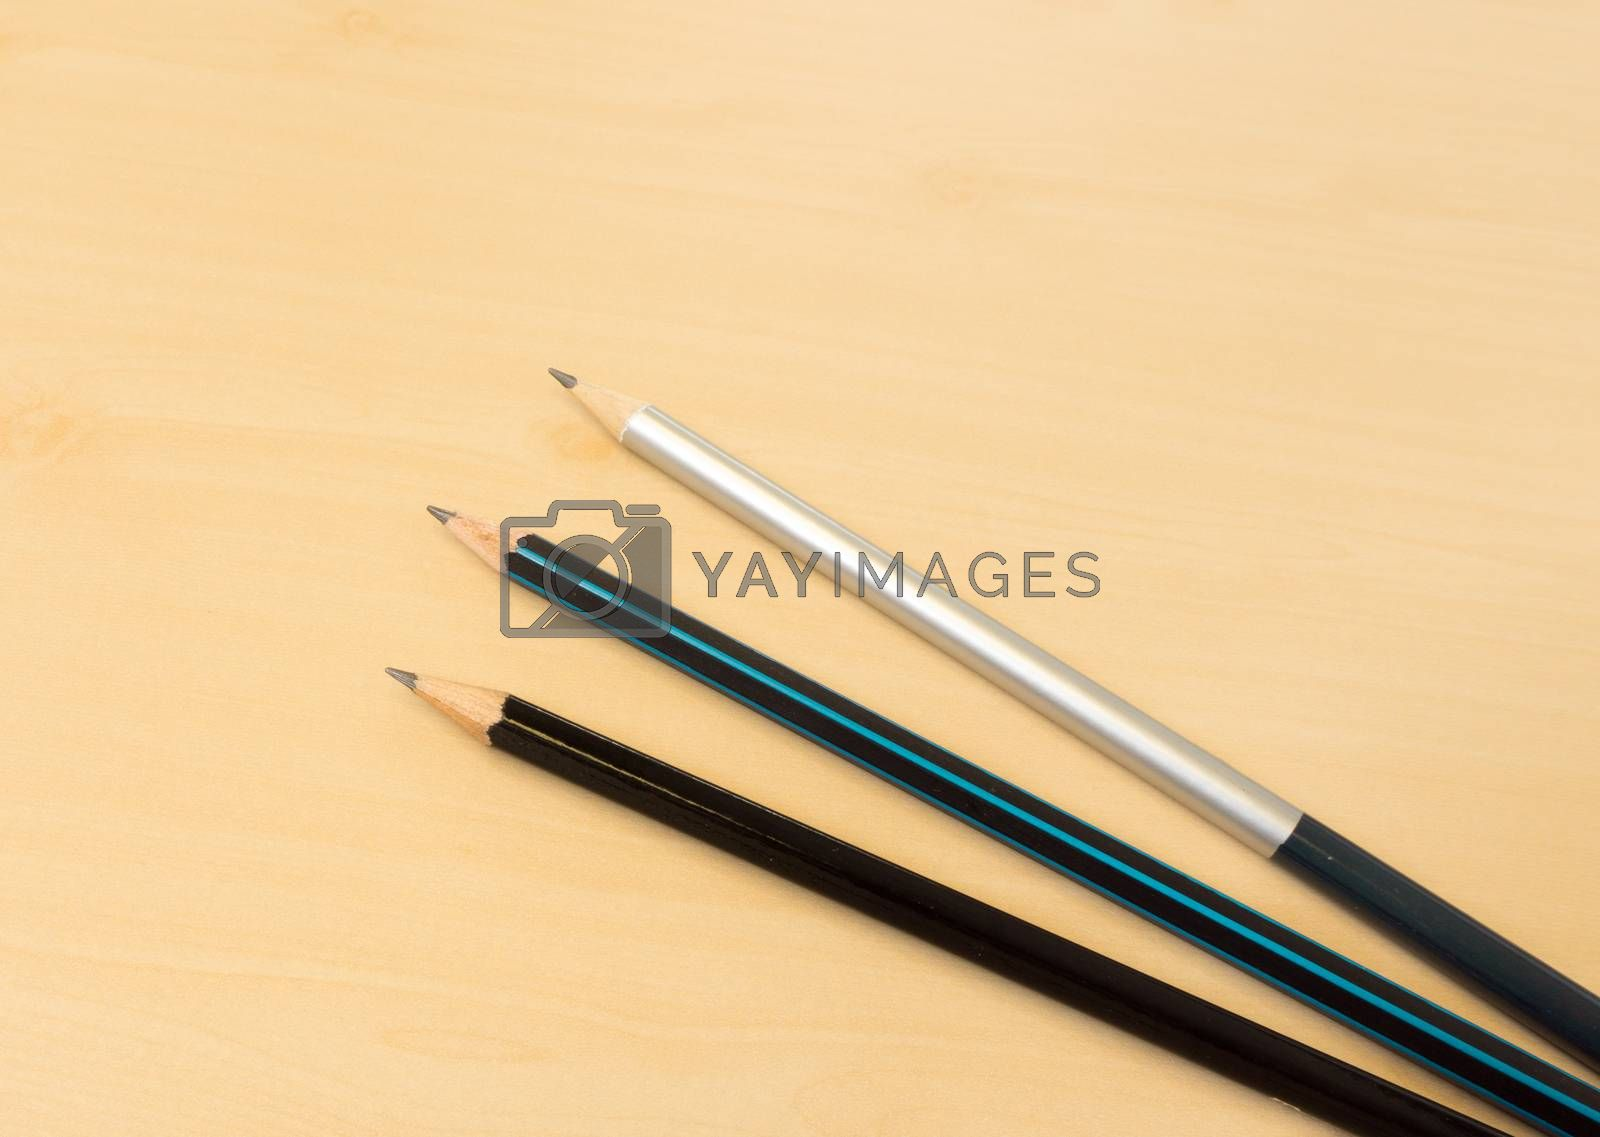 Three Color Sharp Pencils Placed on Light Brown Wooden Table Texture